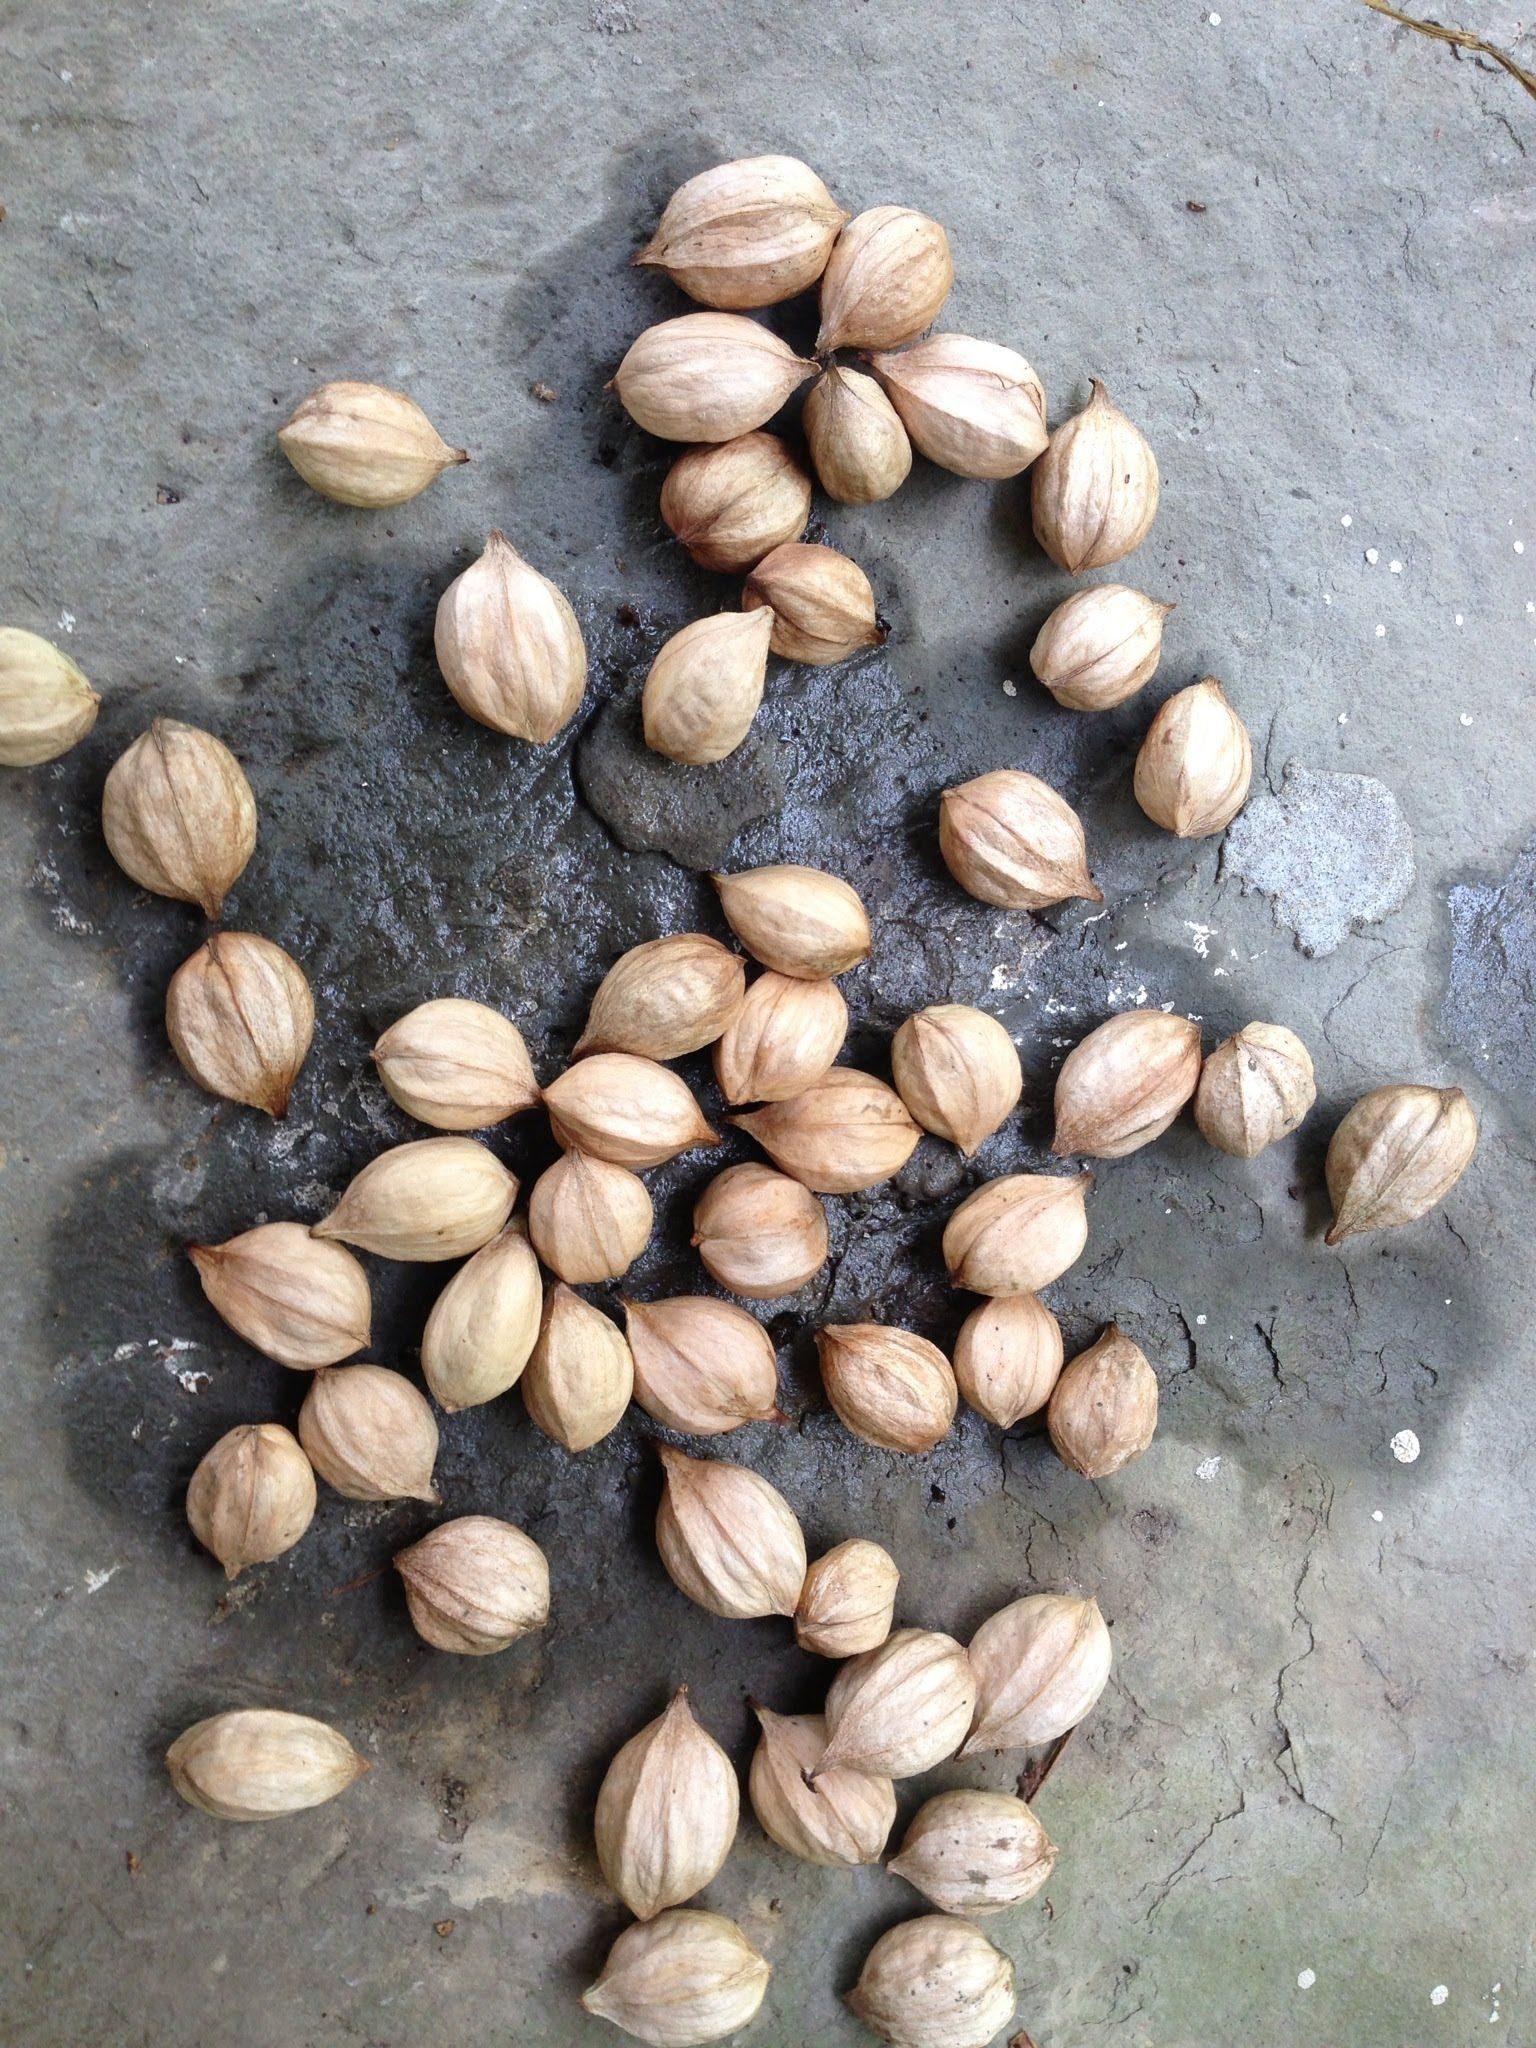 Harvesting And Preparing Hickory Nuts For Long Term